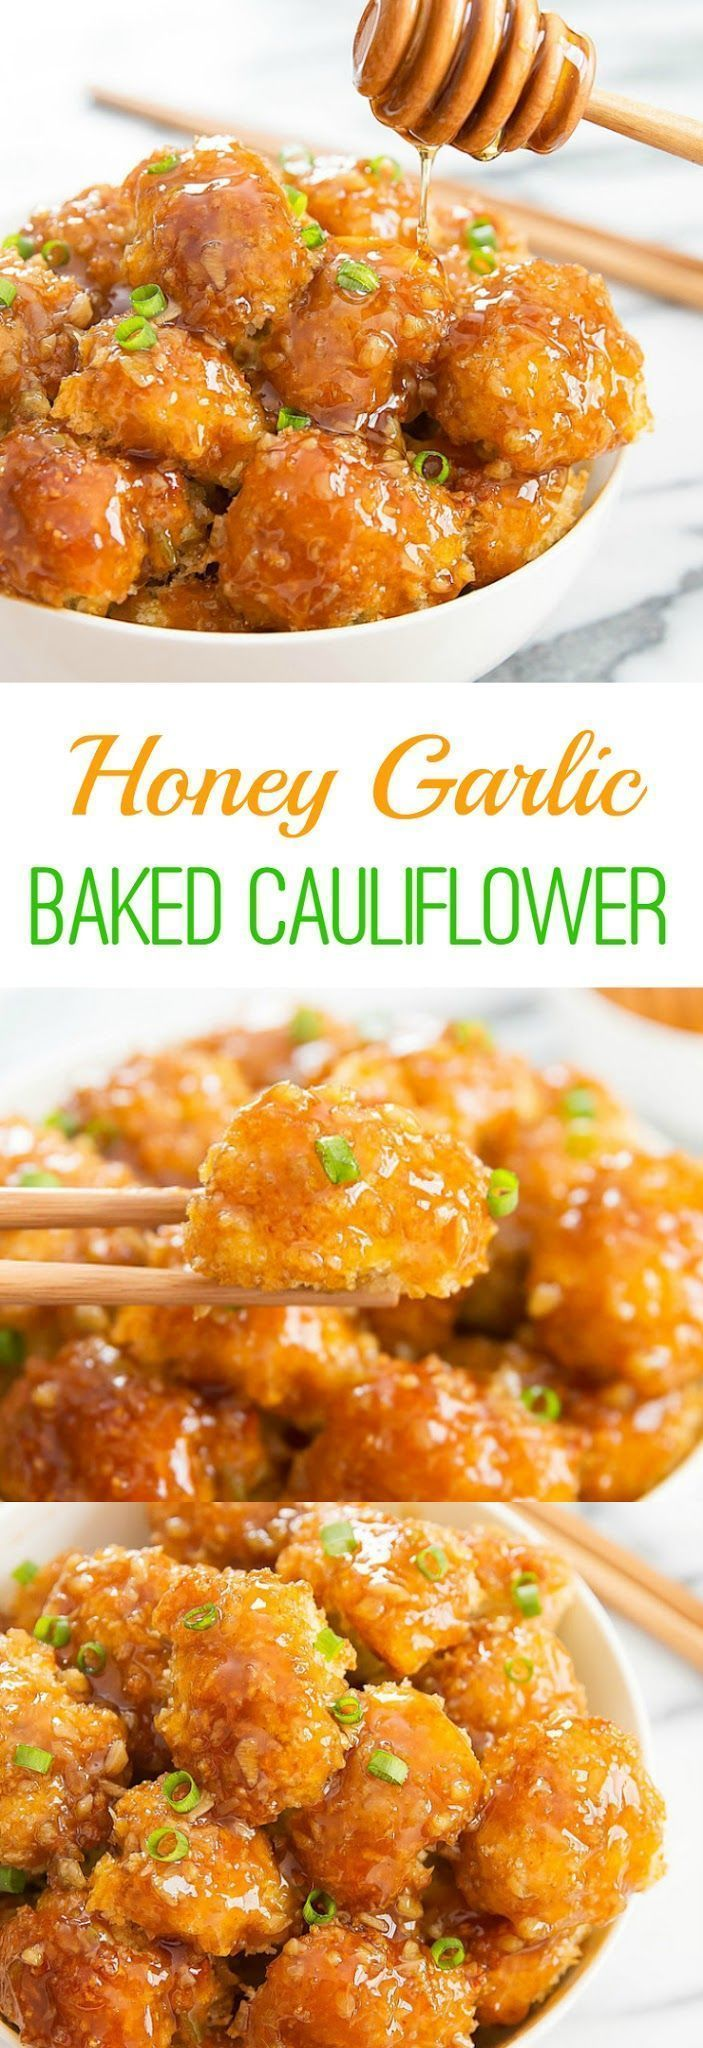 Honey Garlic Baked Cauliflower. An easy and delicious weeknight meal! - I cant get enough of this honey garlic sauce. Its savory, spicy, and sweet, all at the same time. And crunchy bites of cauliflower are the perfect vehicle for soaking up the thick s